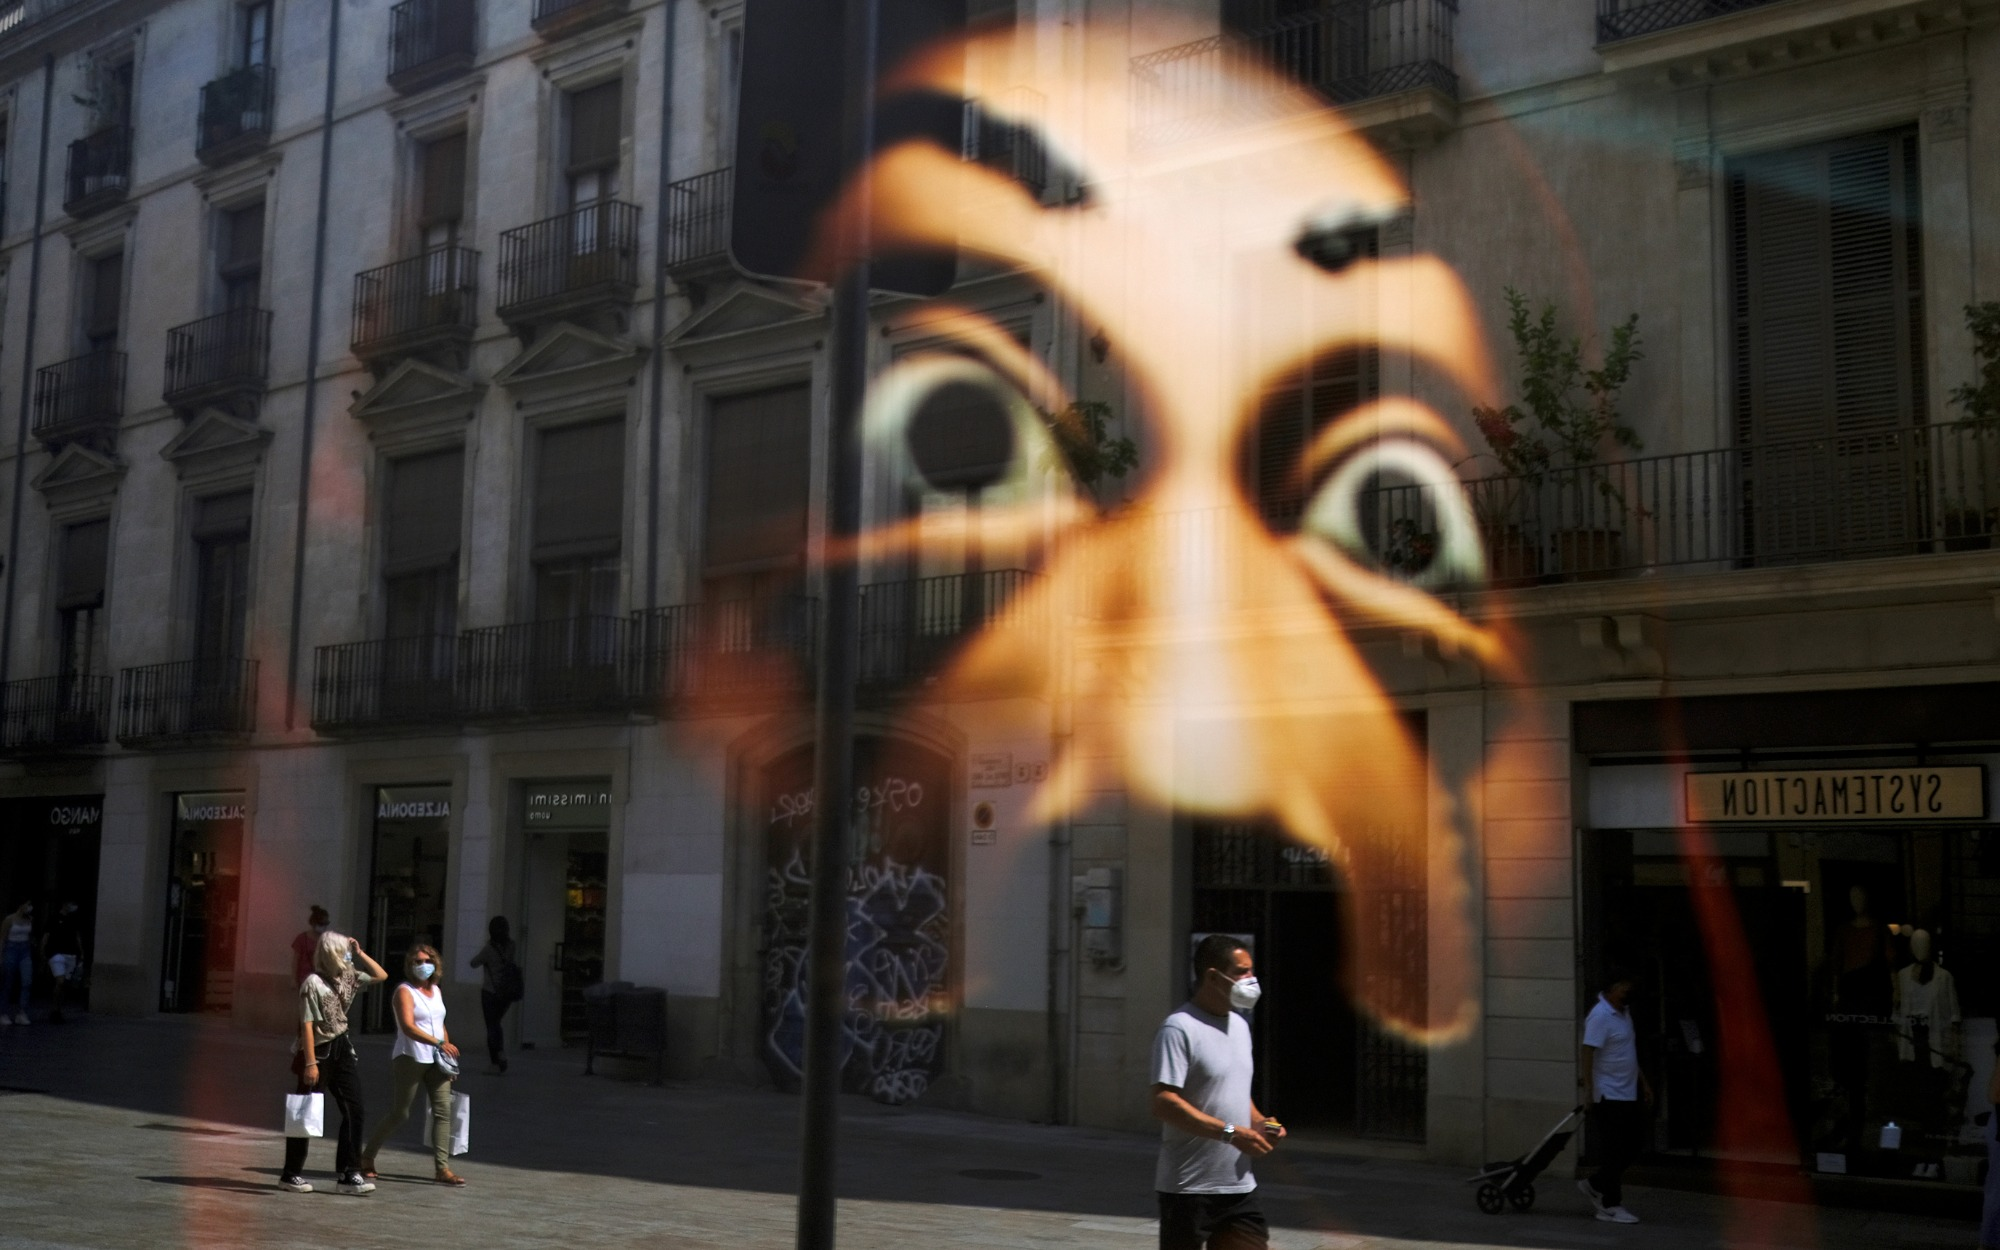 DOCUMENT DATE:September 15, 2020People wearing face masks are reflected in a window of a shop as they walk on a street at Barrio Gotico (Gothic Quarter), after Catalonia's regional authorities announced restrictions to contain the spread of the coronavirus disease (COVID-19), in Barcelona, Spain September 15, 2020. REUTERS/Nacho Doce